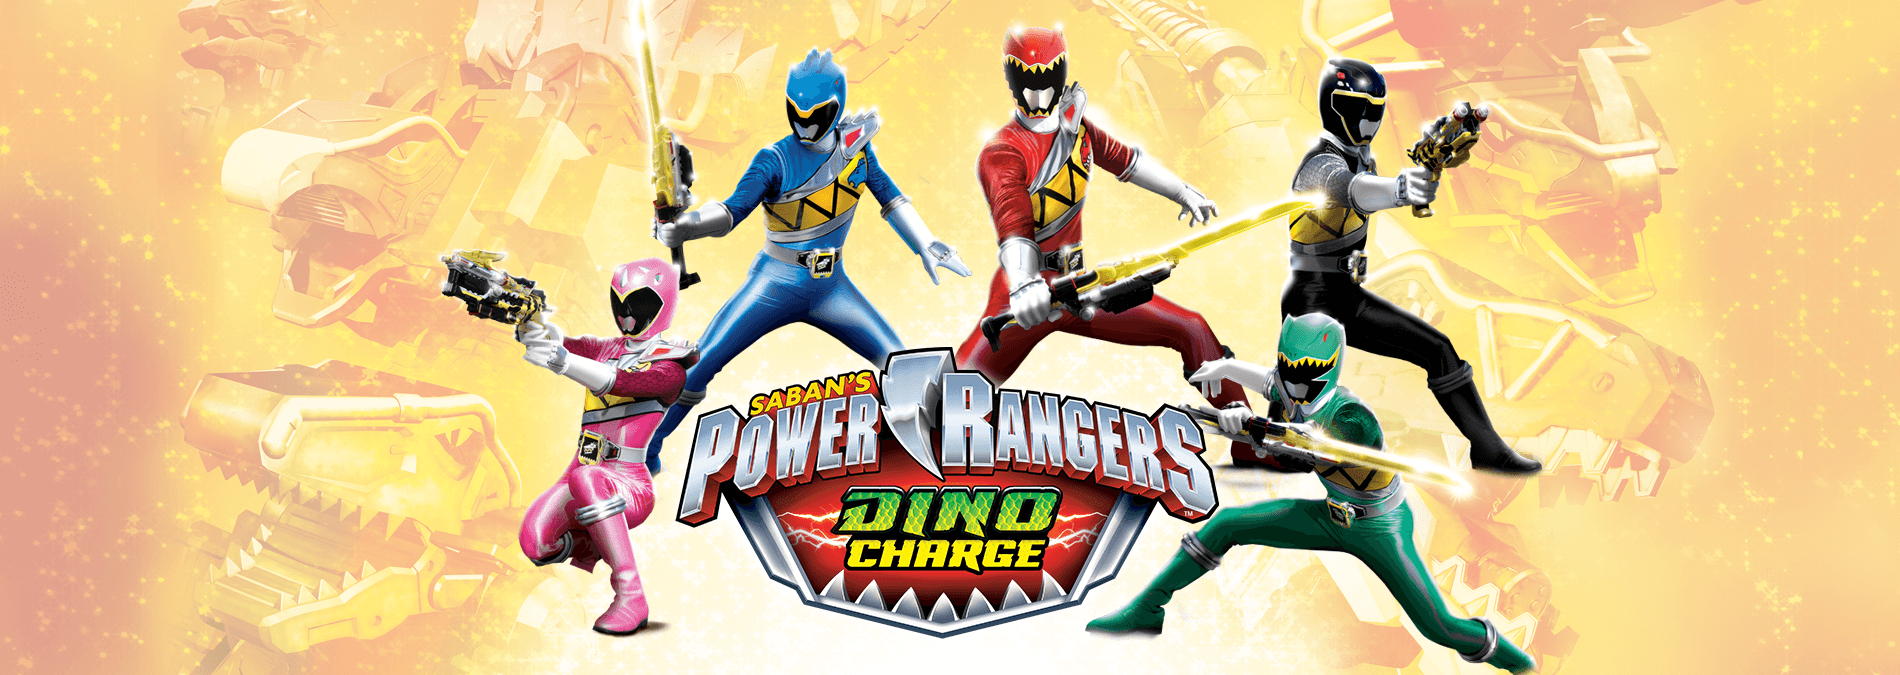 Logo Power Rangers Dino Charge Png 1 Png Image